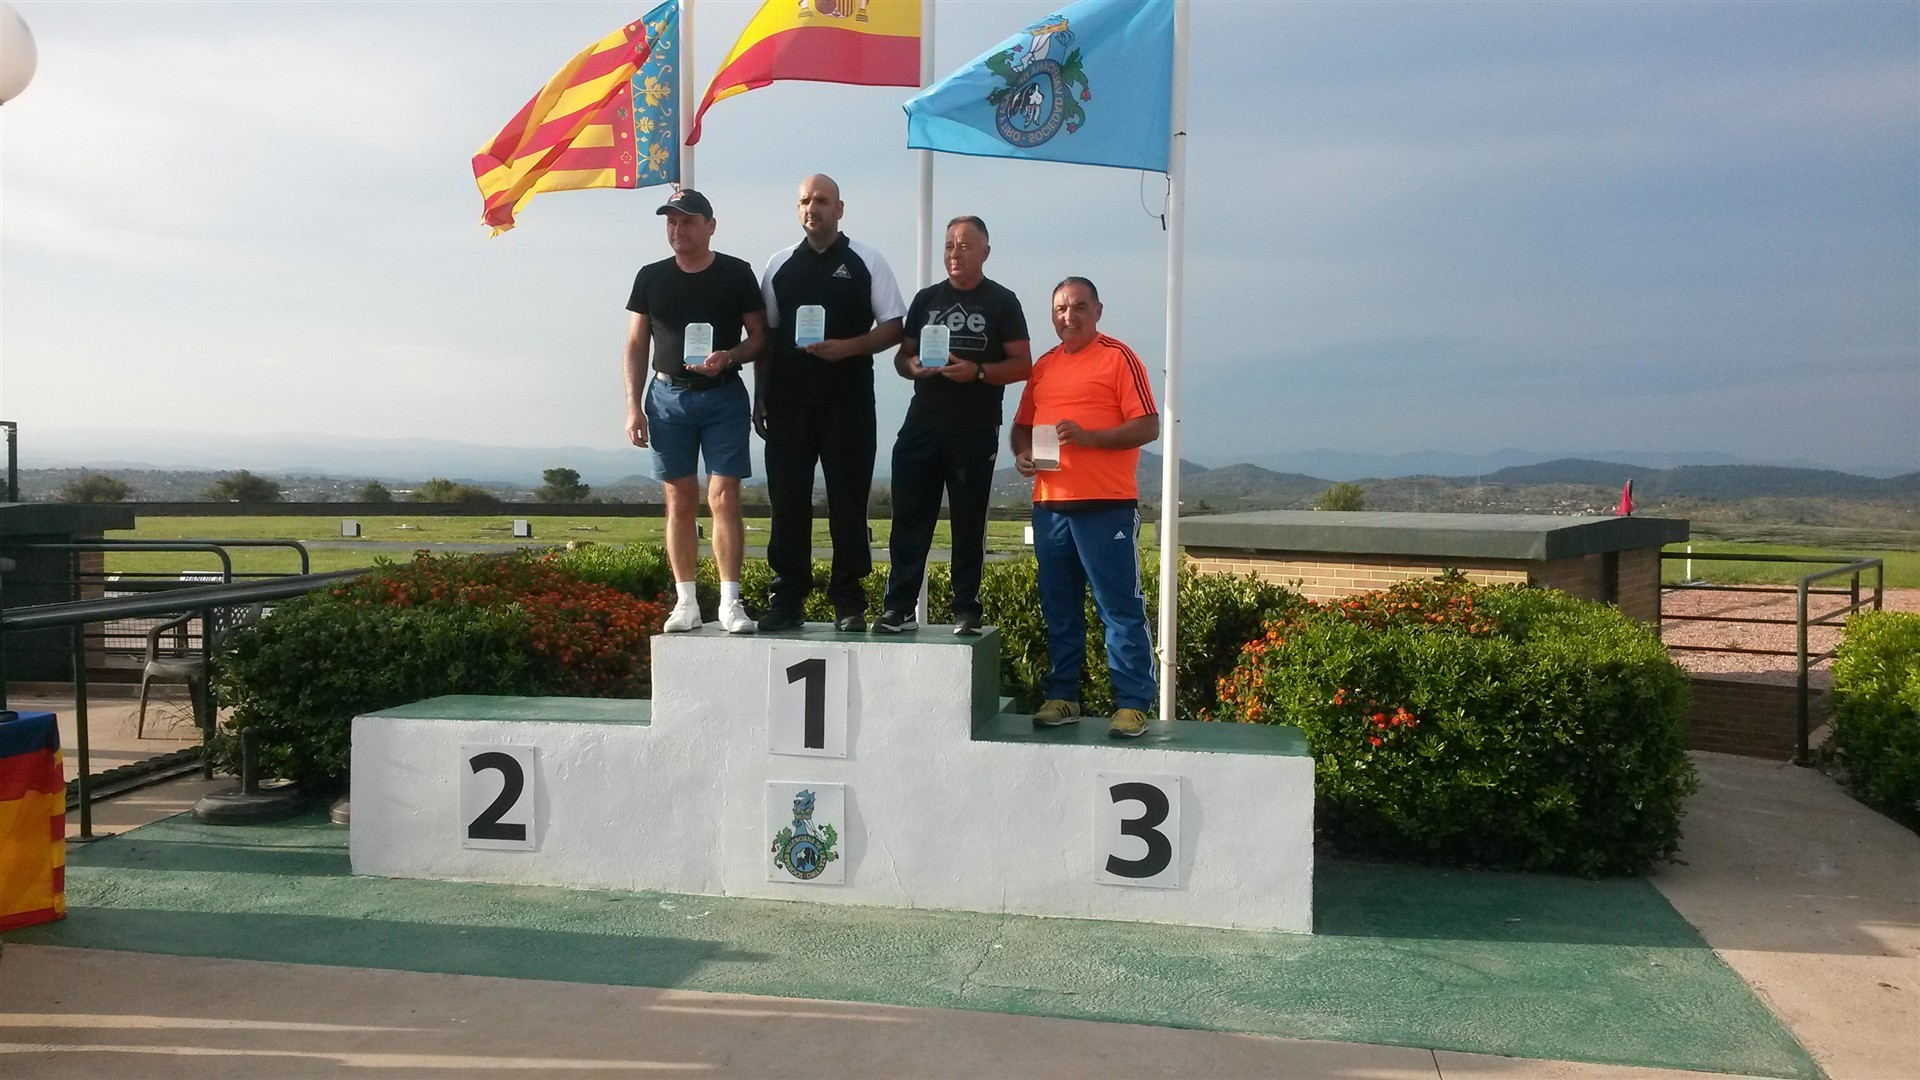 l 1ª CATEGORIA CRISTOBAL FLORES, 2ª CATEGORIA SANCHIS SALVADOR, 3ª CATEGORIA ANTONIO CANDELA Y 4ª CATEGORIA JUAN M. FERNANDEZ NOVELLA